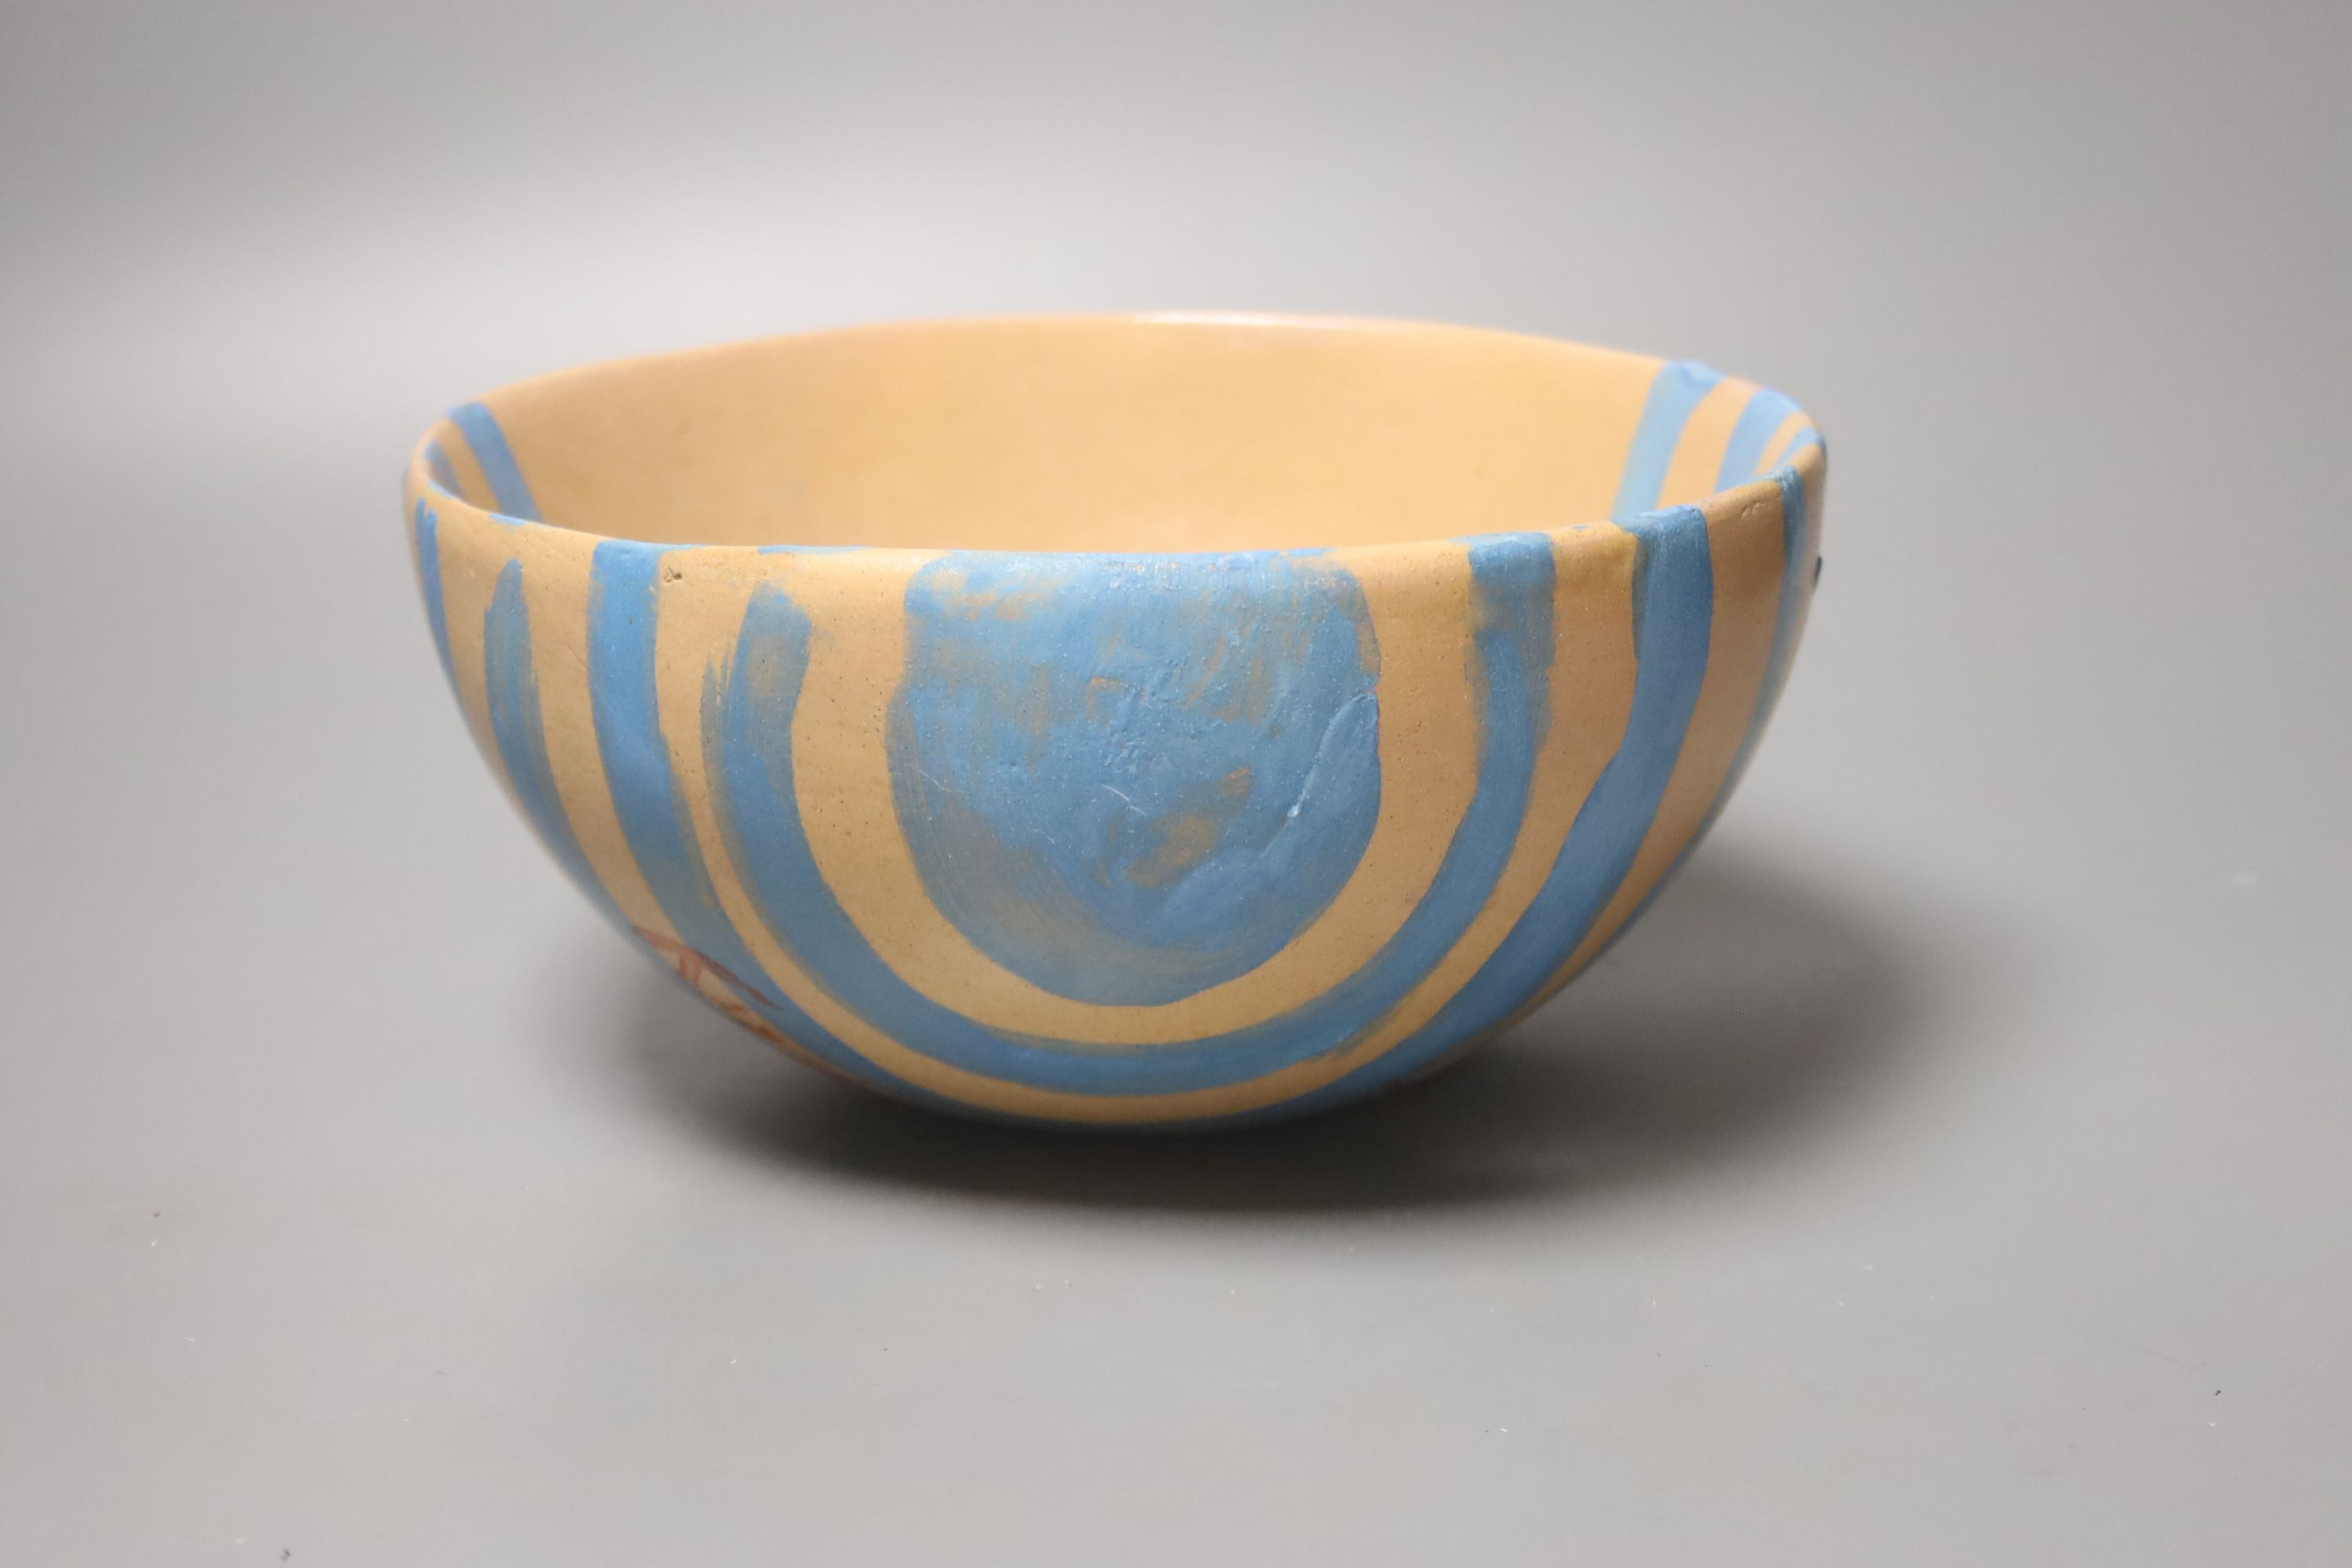 Quentin Bell. A hand painted earthenware bowl, 10cm high